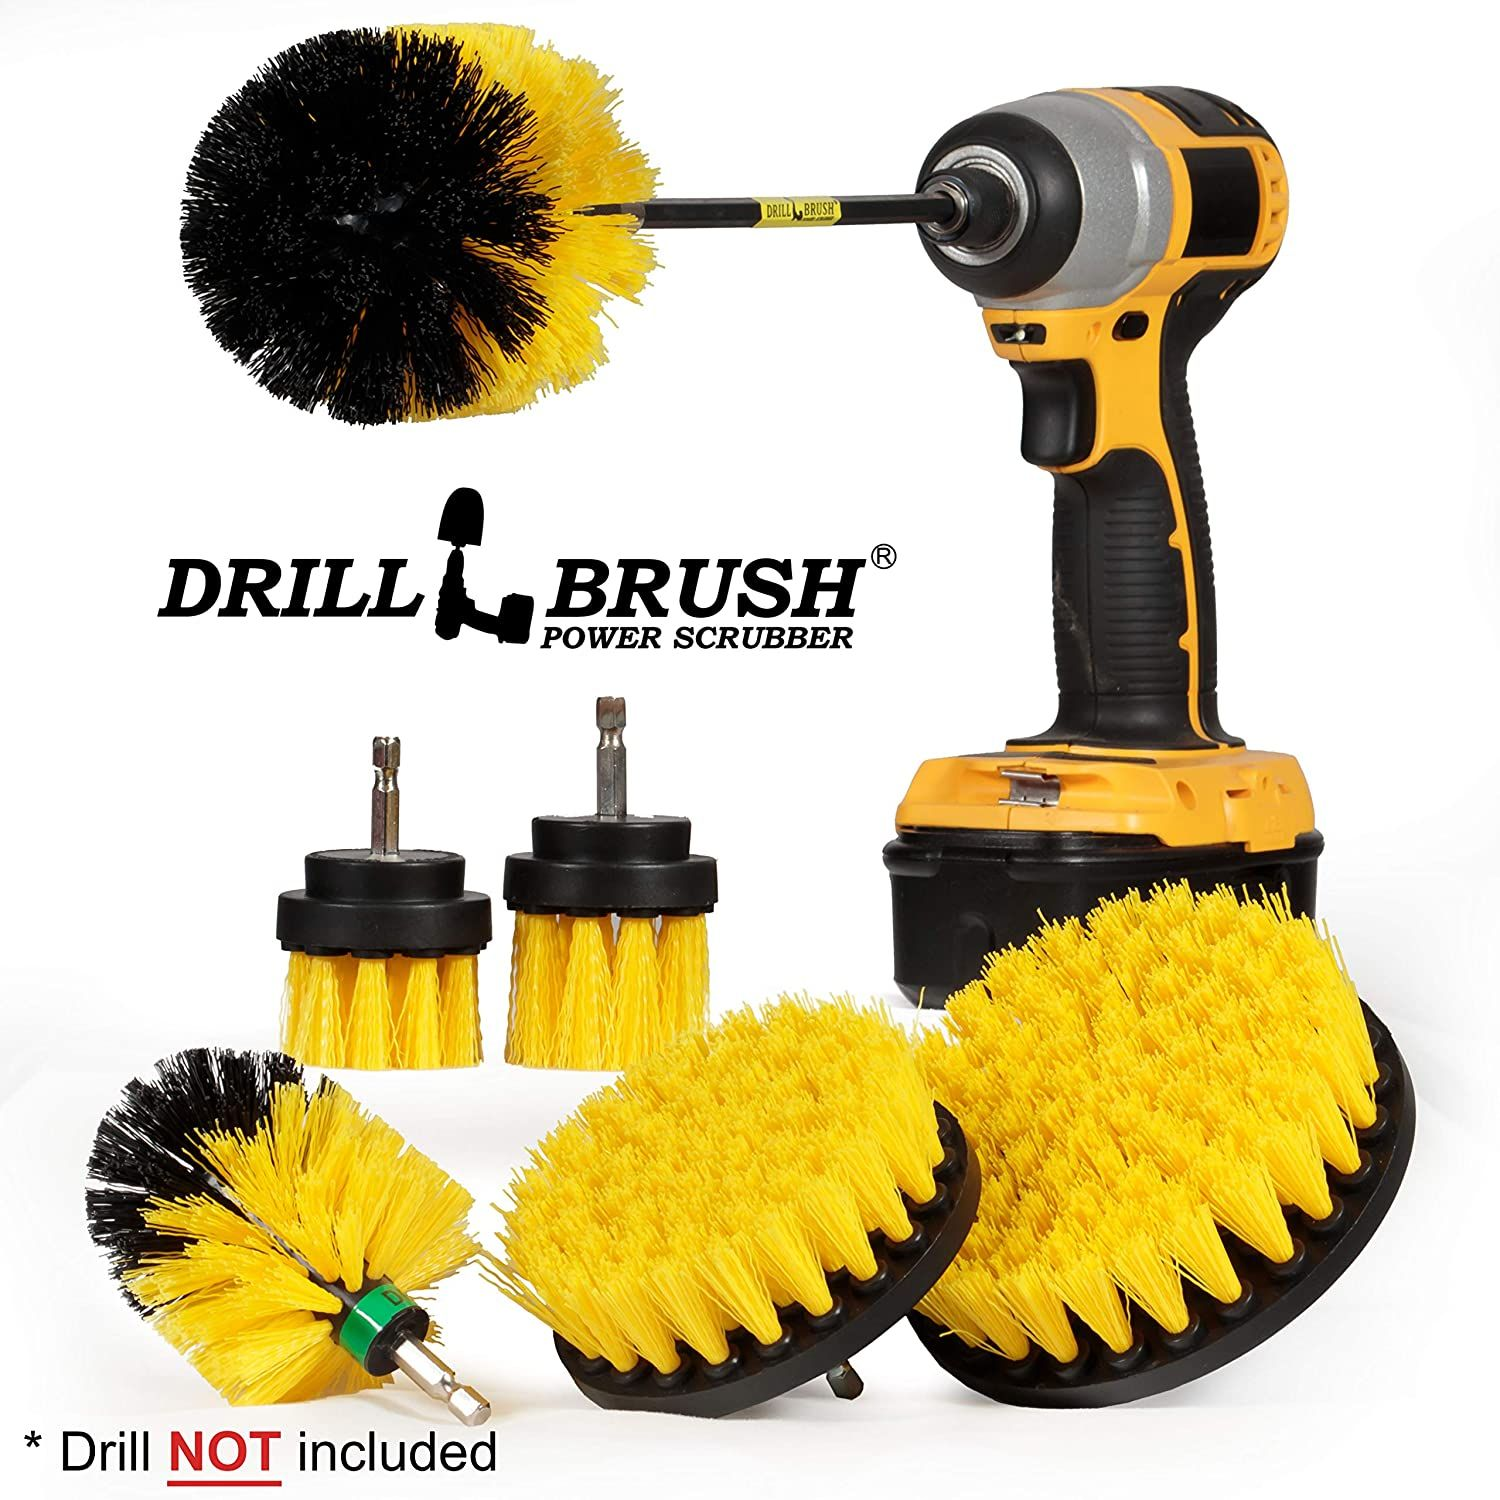 Drillbrush Ultimate Grout Cleaning Kit with Long Reach